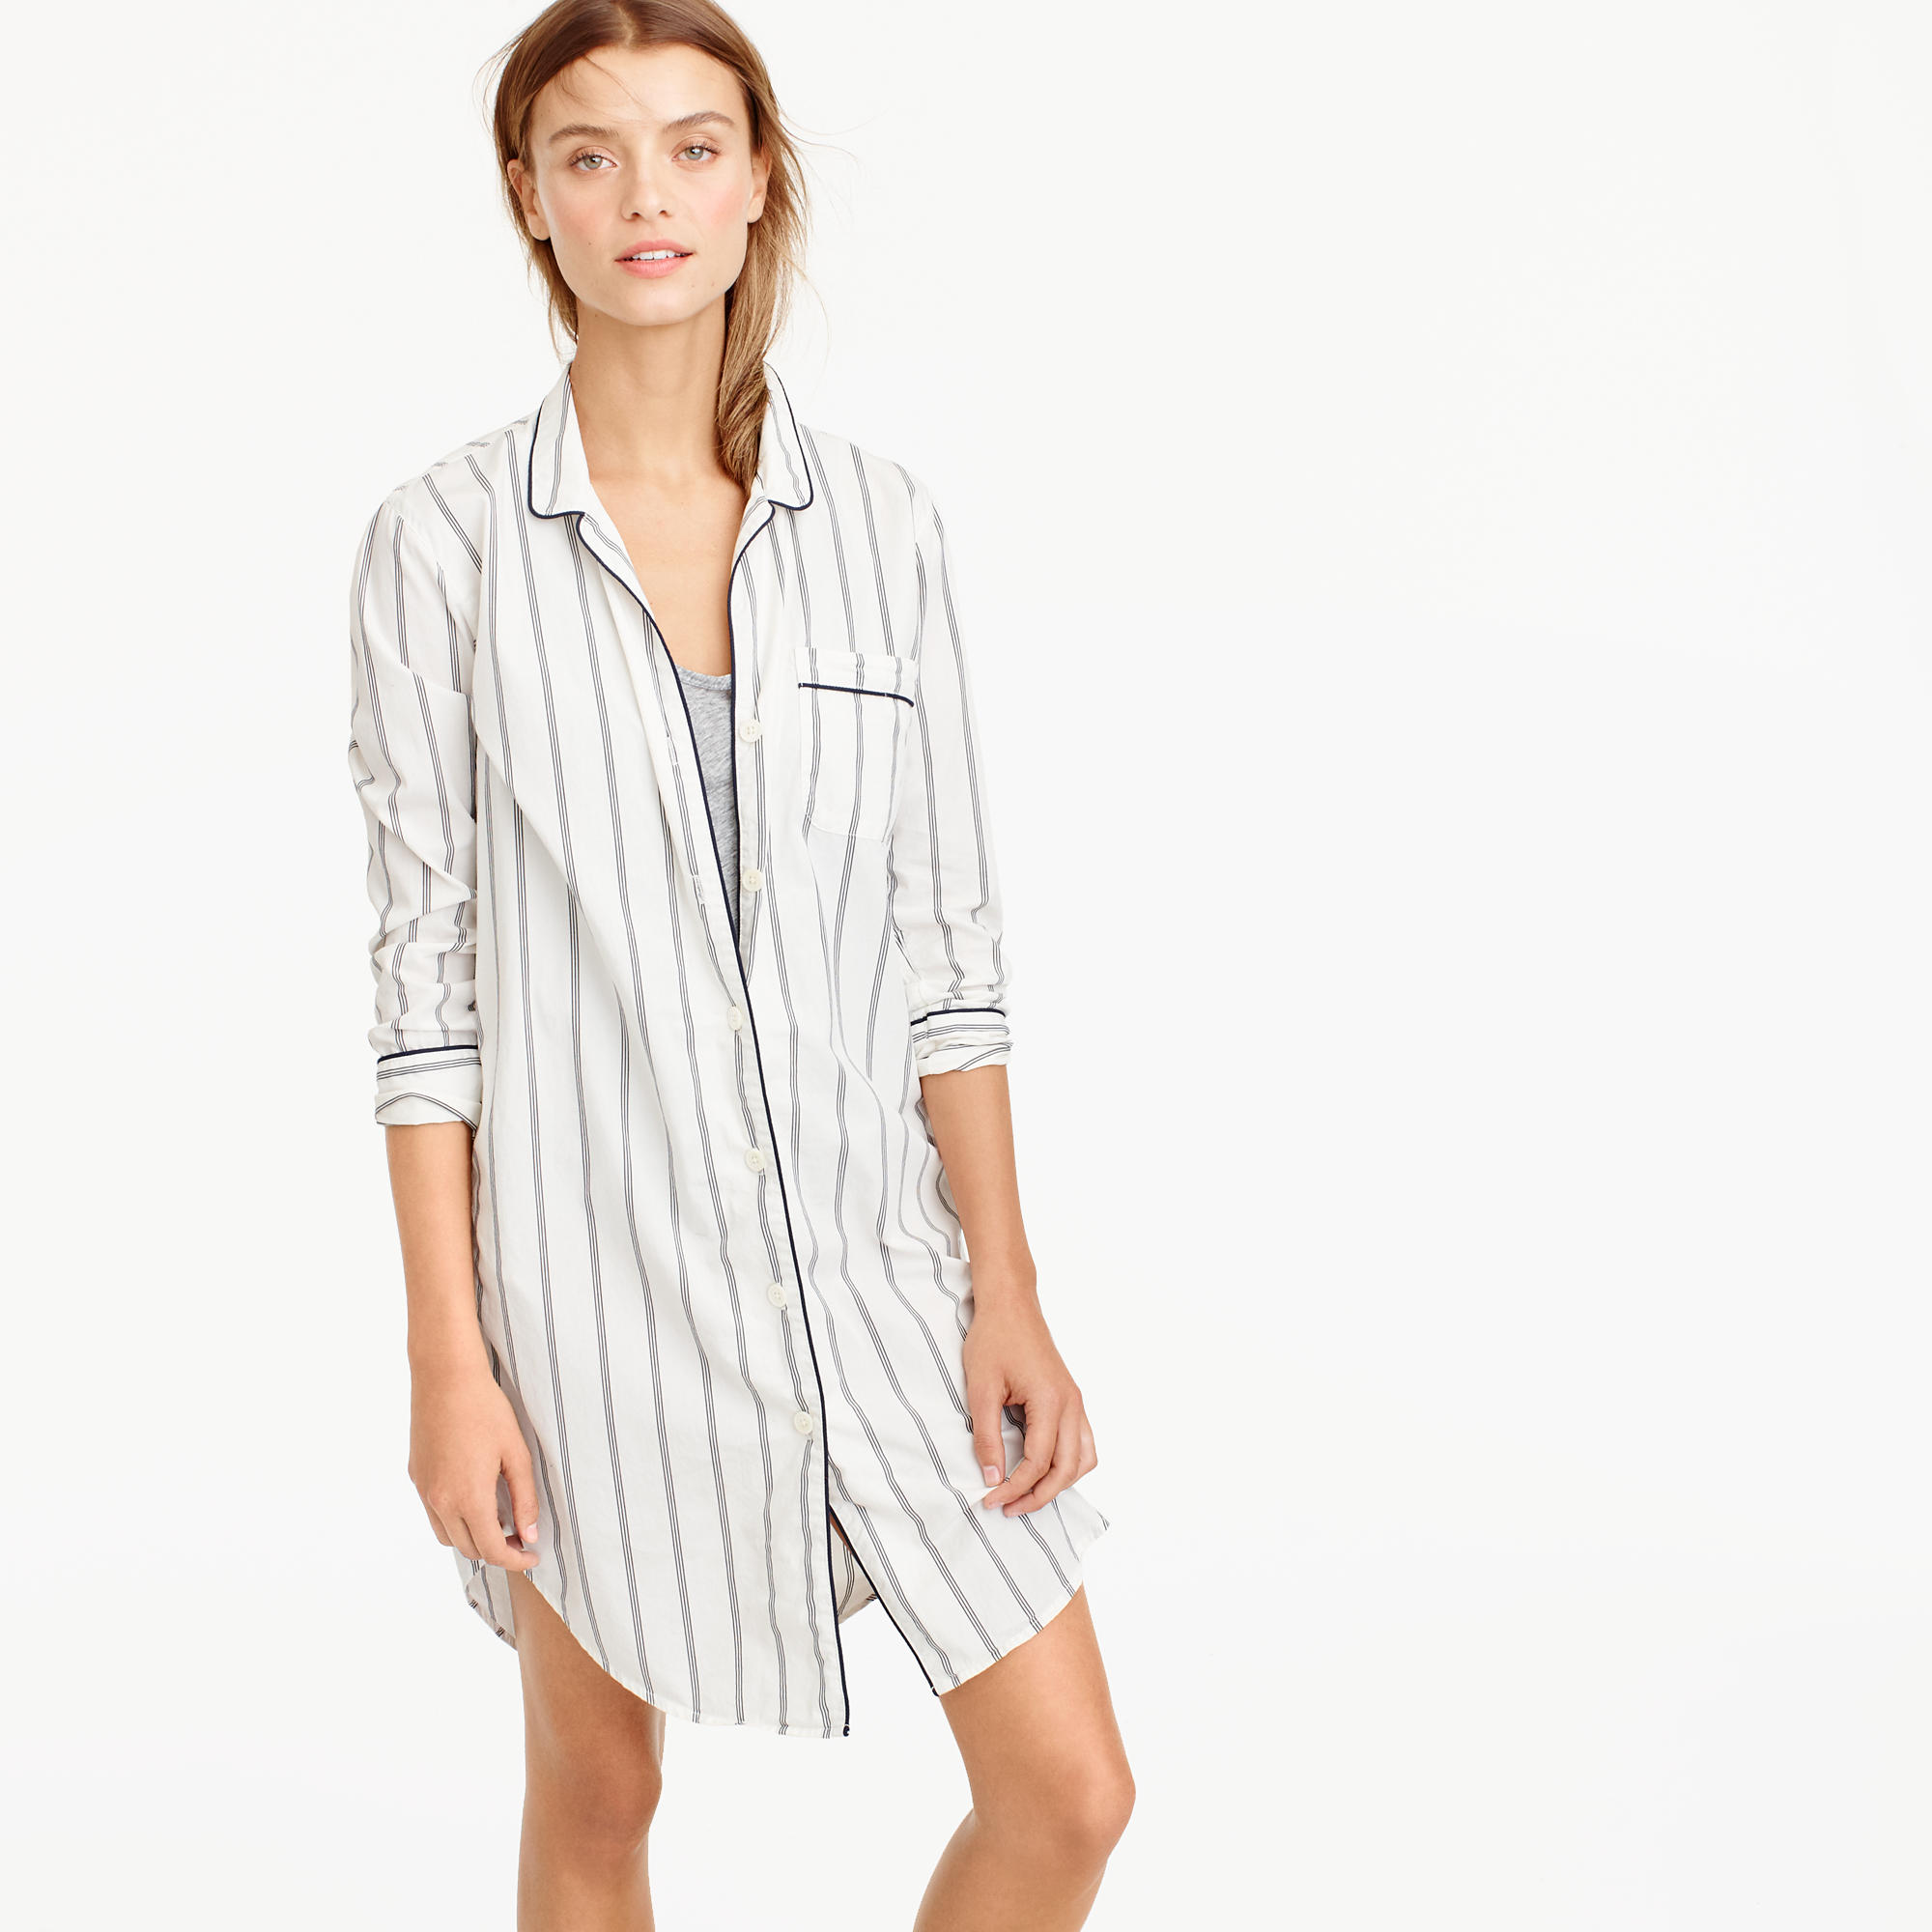 Cute Pajamas for Women to Netflix and Chill In - theFashionSpot 76d5b2d6c